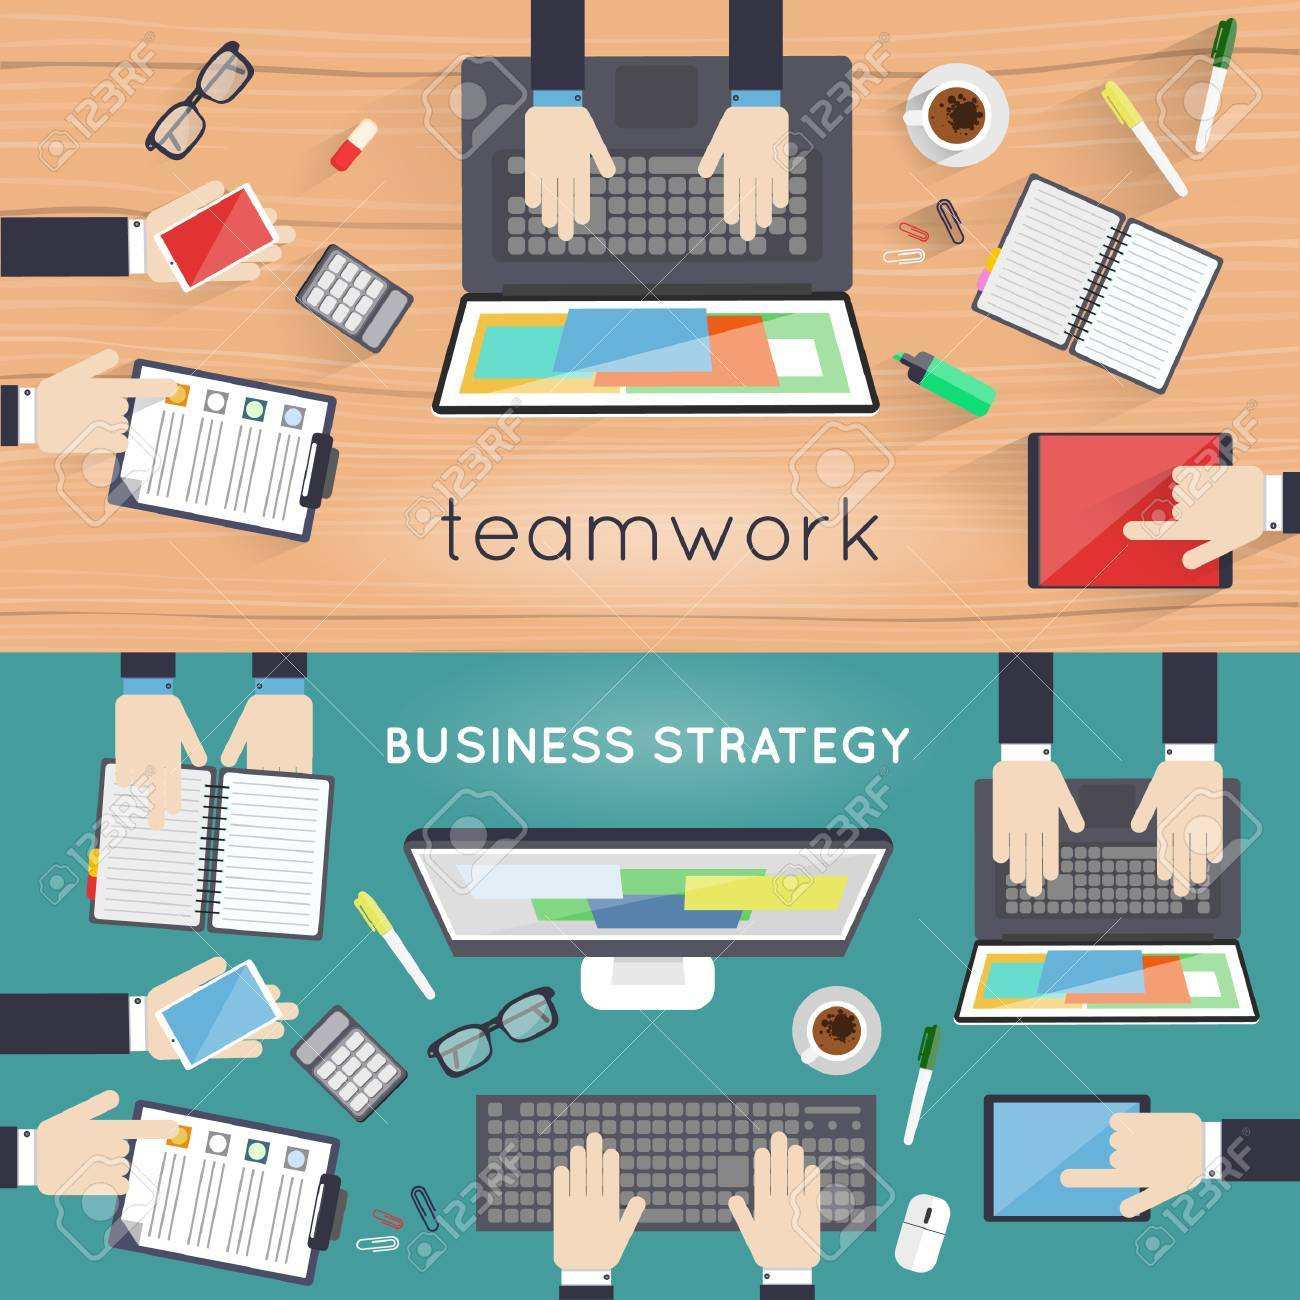 team work business strategy planning analytics management business strategy planning analytics management consulting meeting career development process top